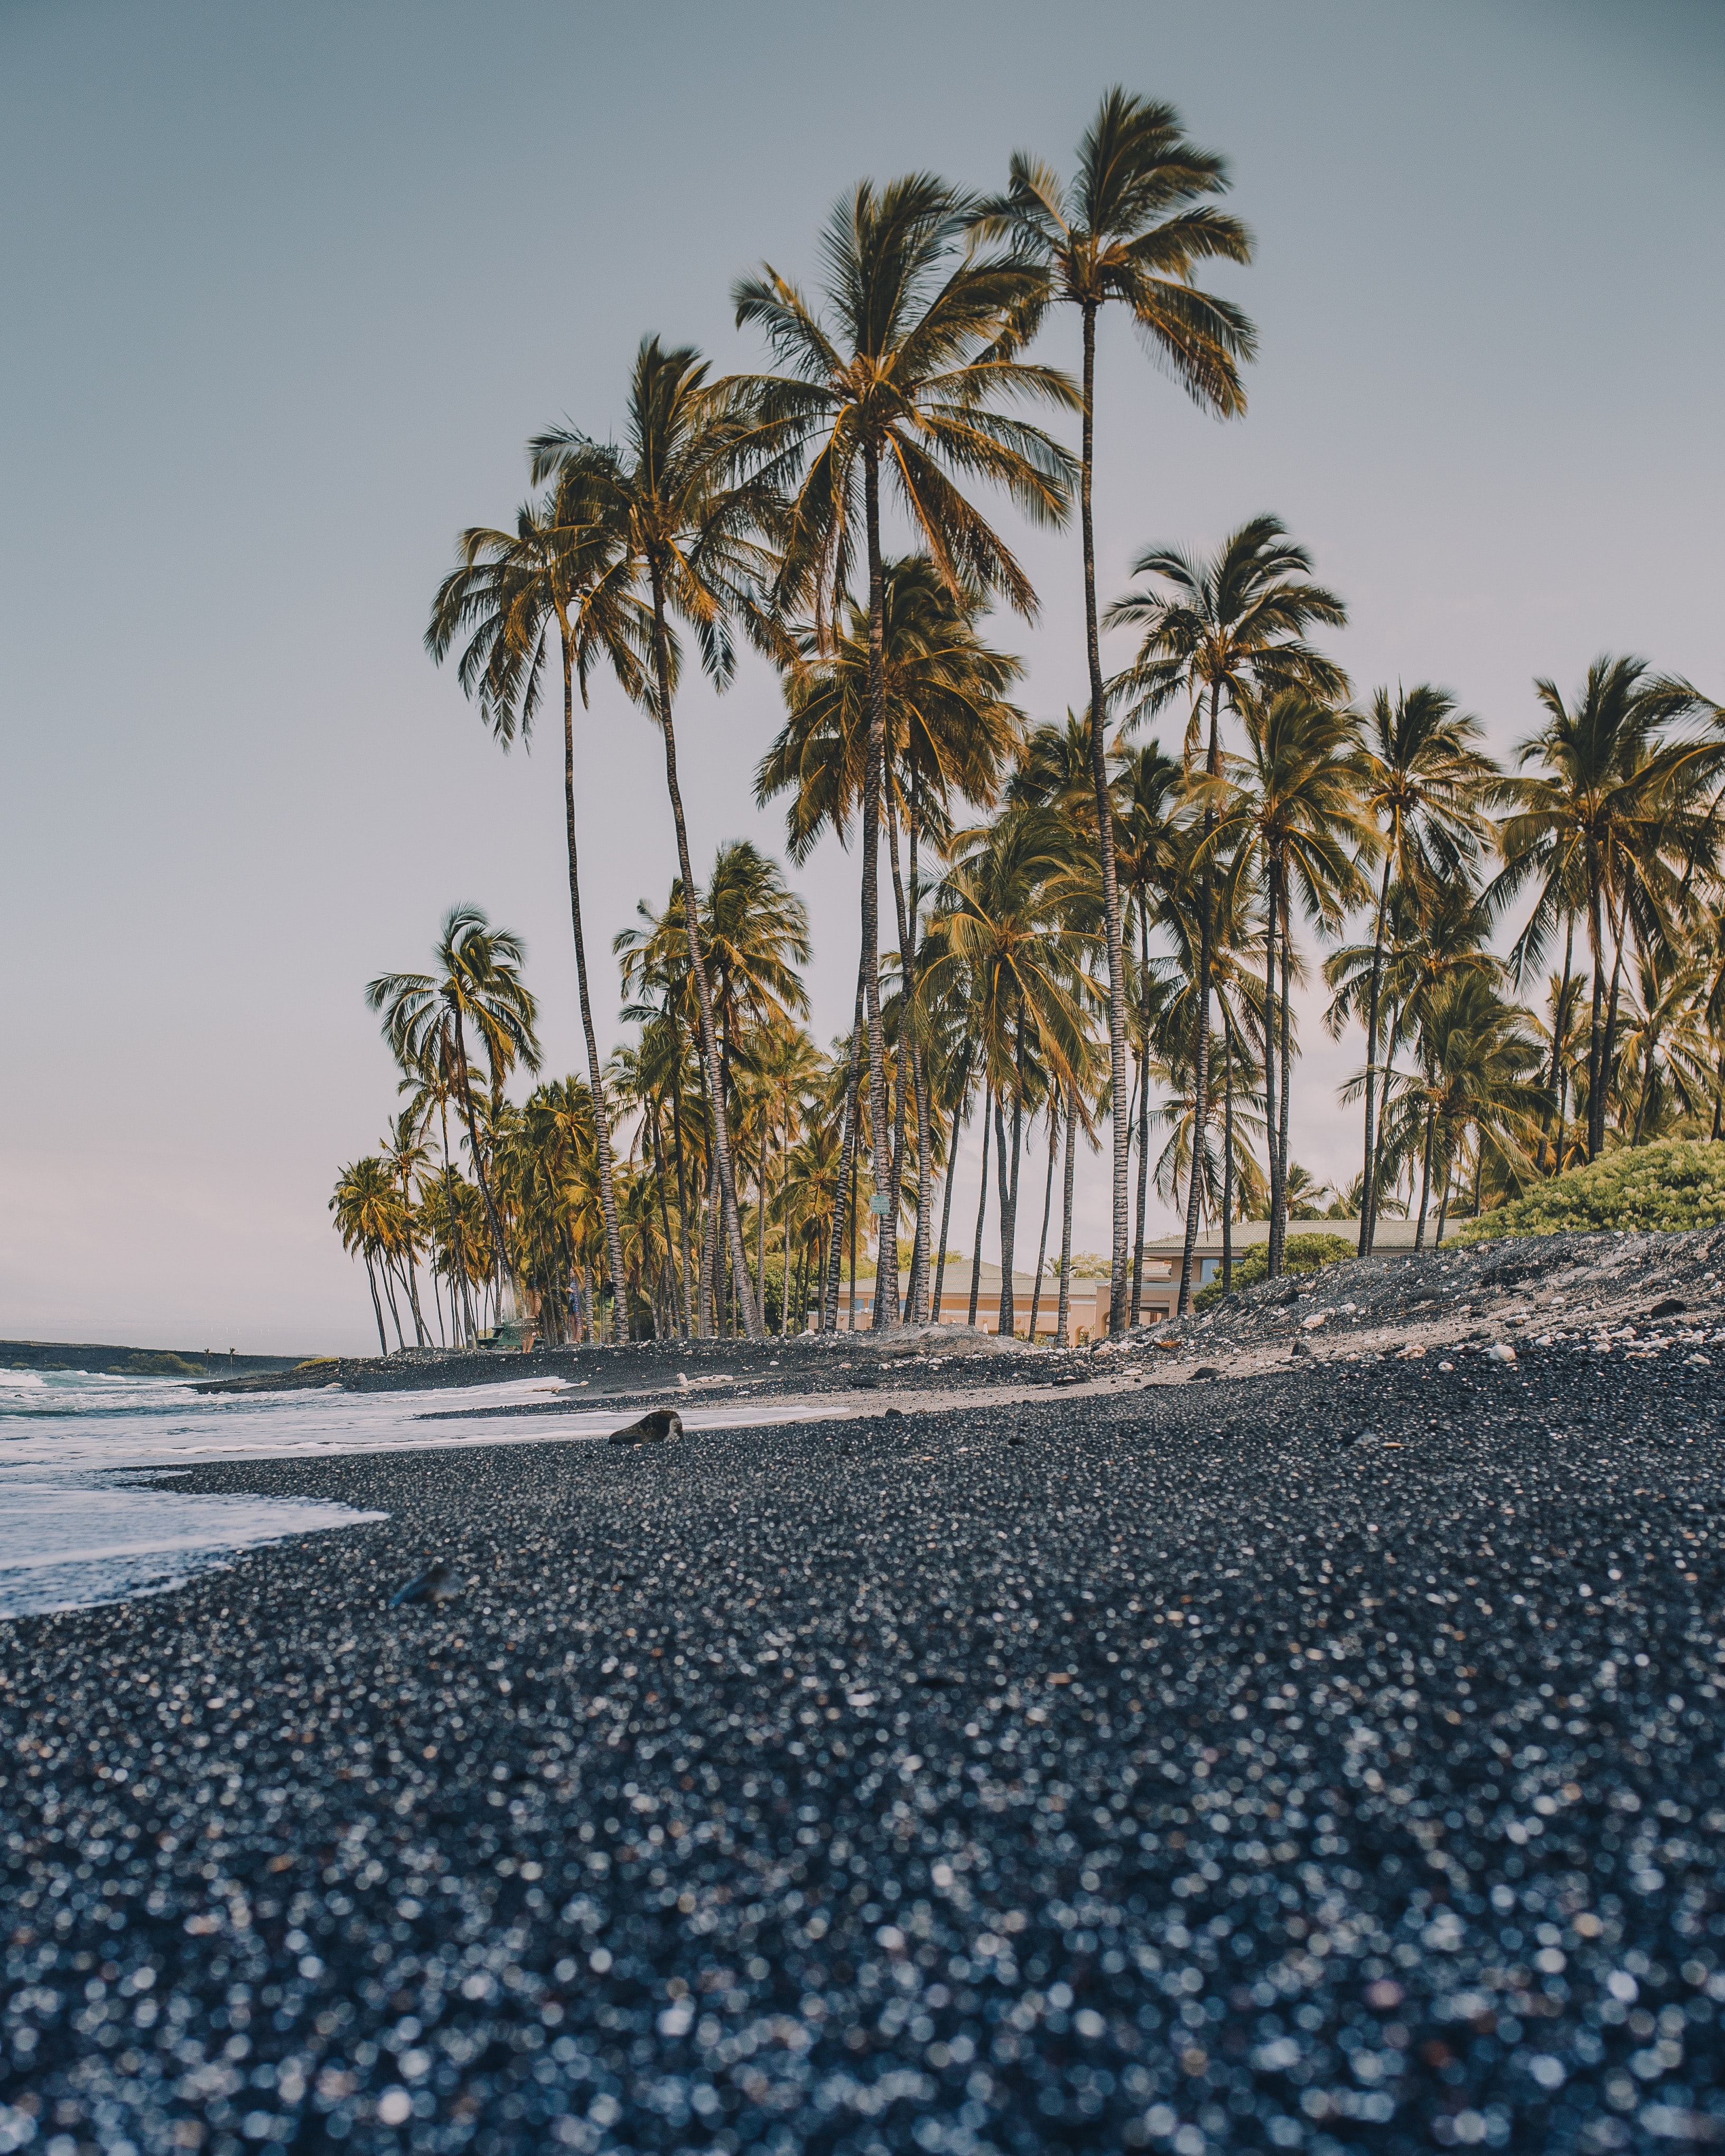 palm trees beside seashore